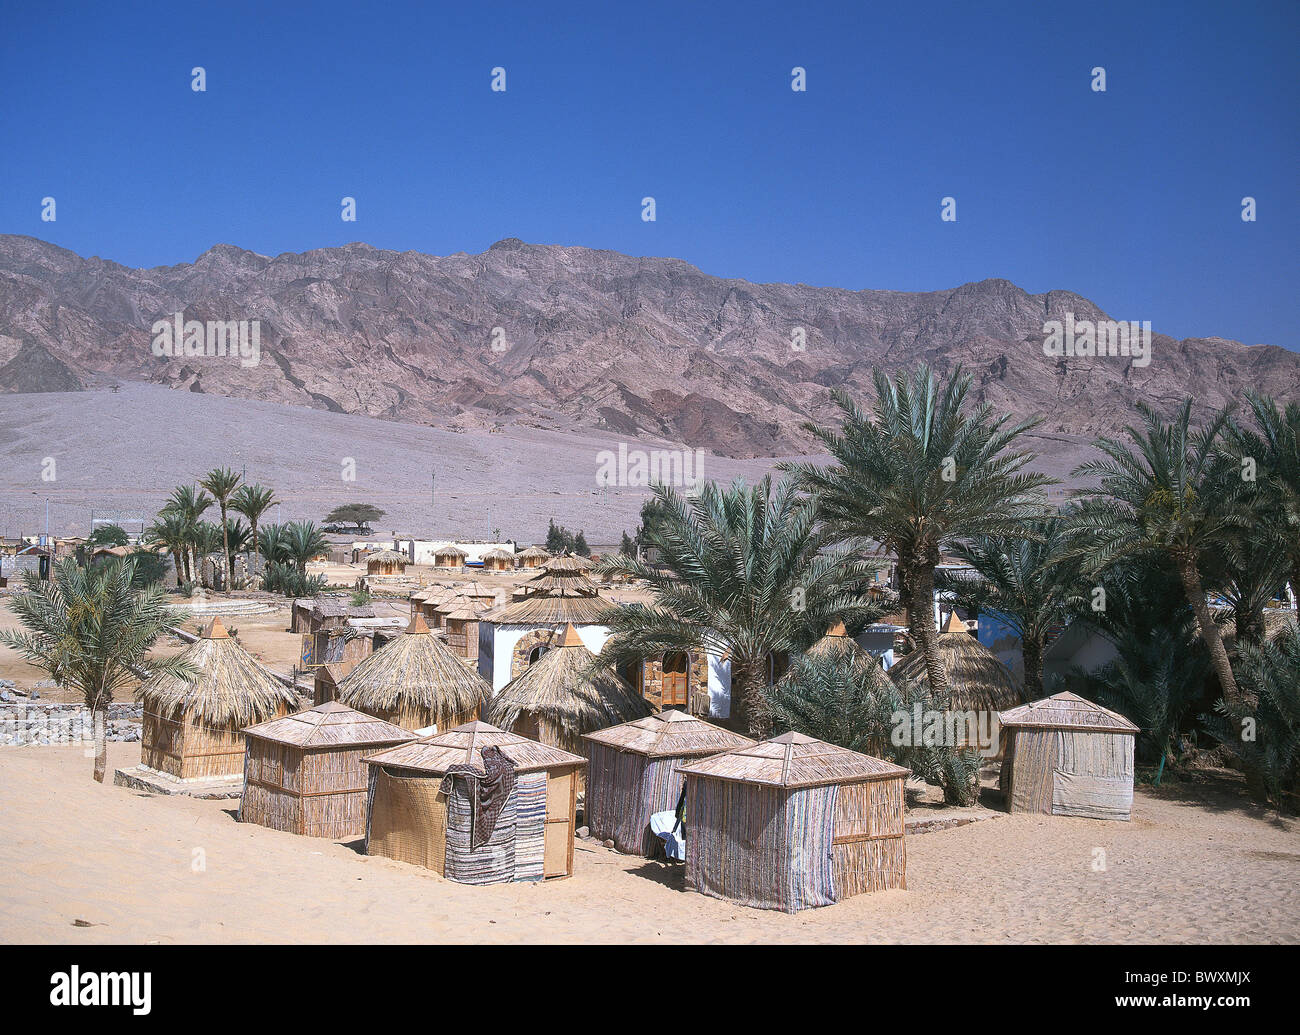 Egypt North Africa Nuweiba tourism straw huts an easy simple lodging palms desert wild Sinai red sea hote - Stock Image